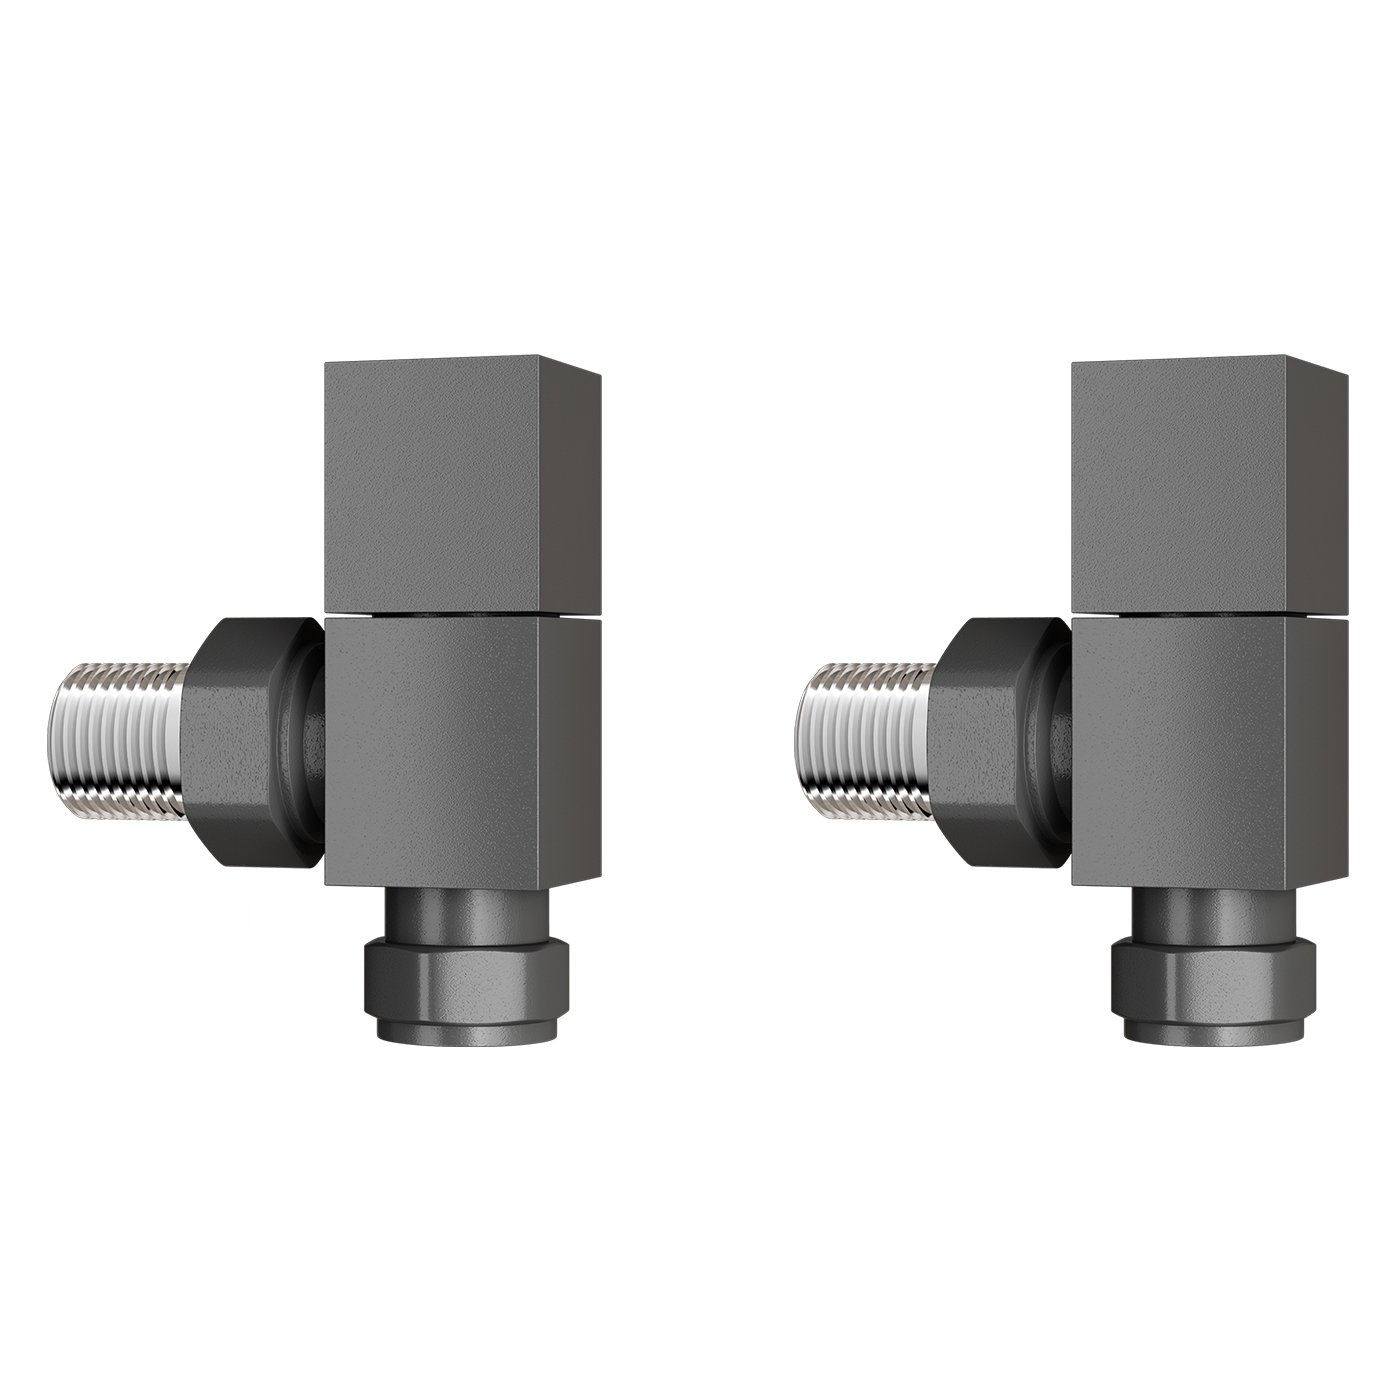 iBathUK 15 mm Standard Connection Square Angled Anthracite Radiator Valves